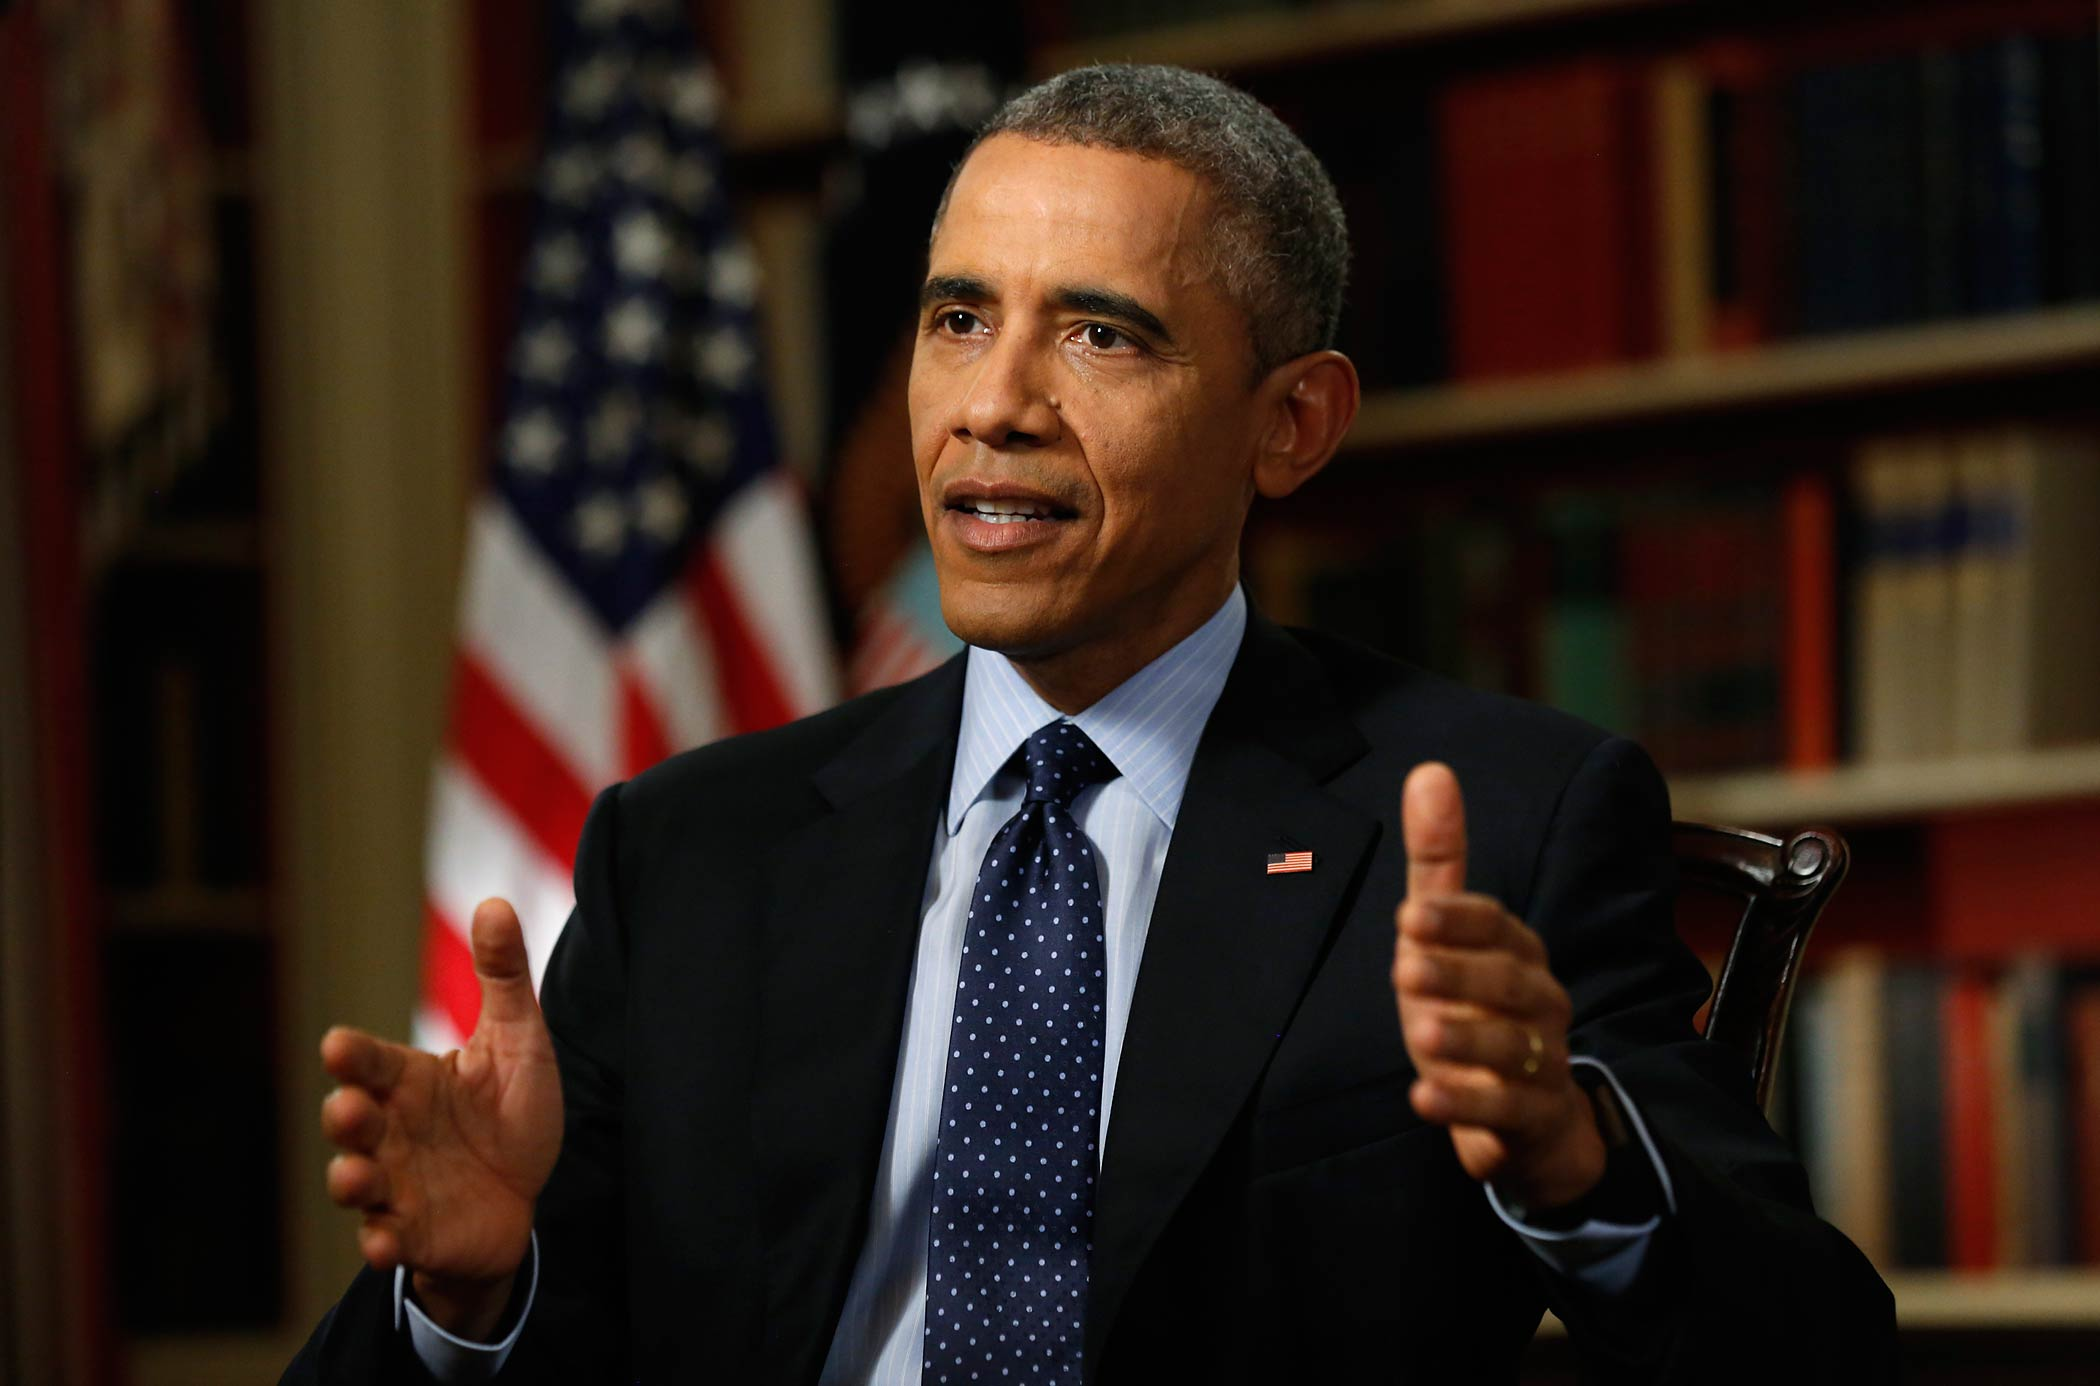 U.S. President Barack Obama speaks during an exclusive interview with Reuters in the Library of the White House in Washington March 2, 2015.